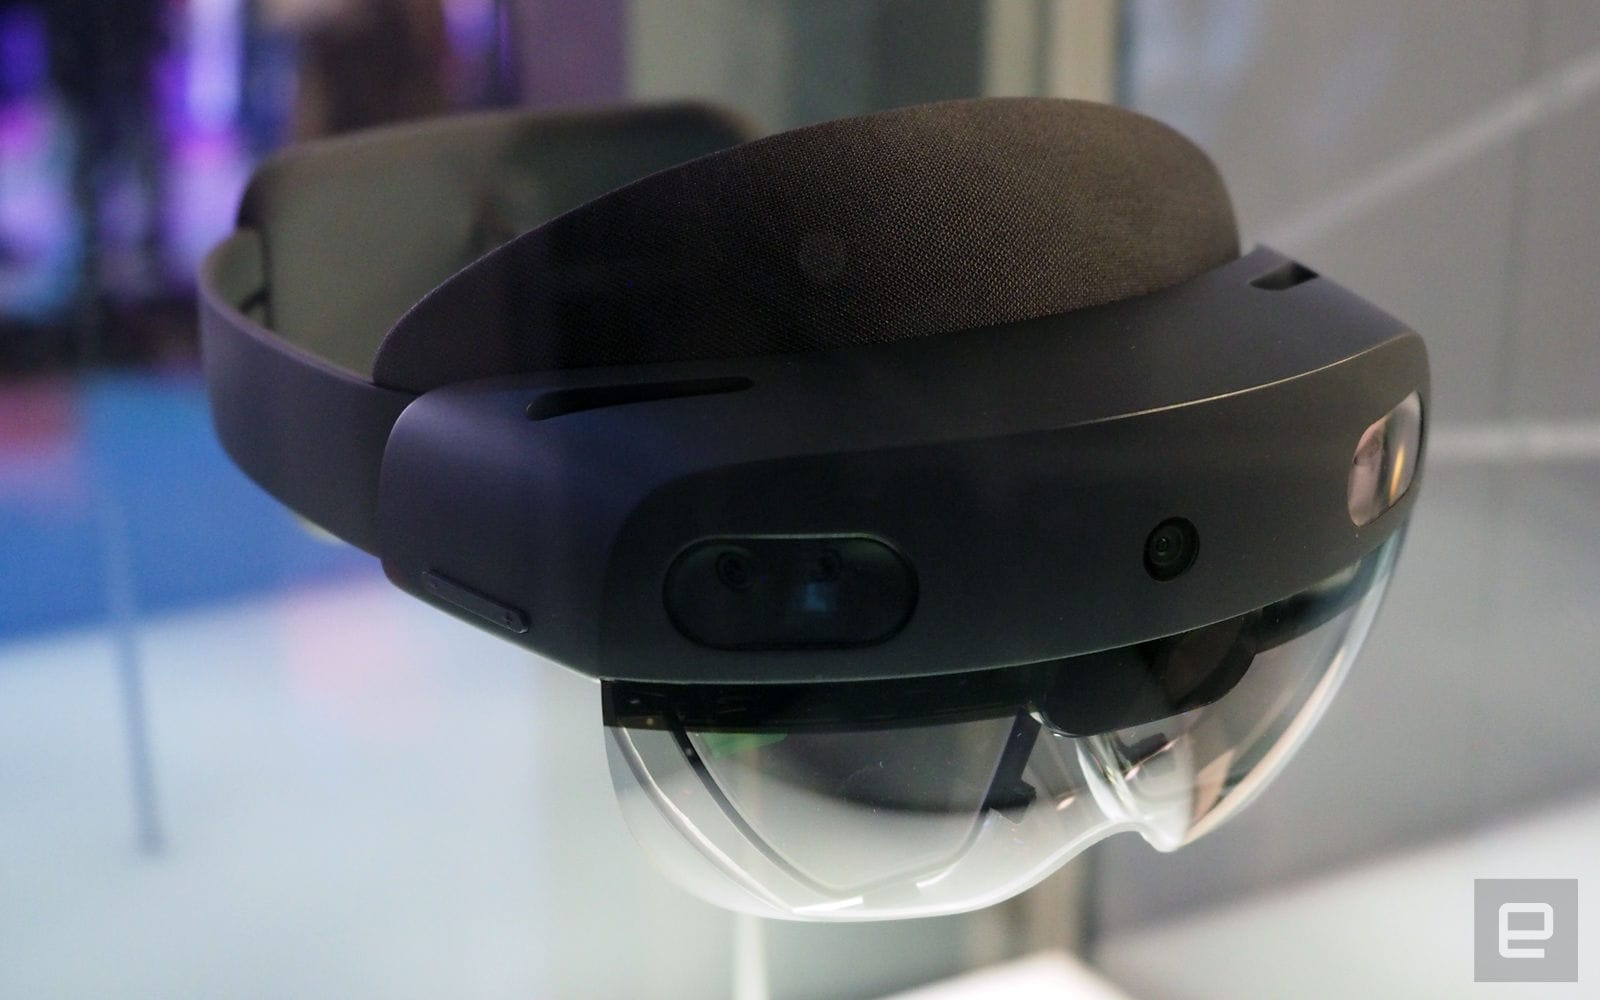 Oculus, Hololens and Vive headsets will soon be able to share apps